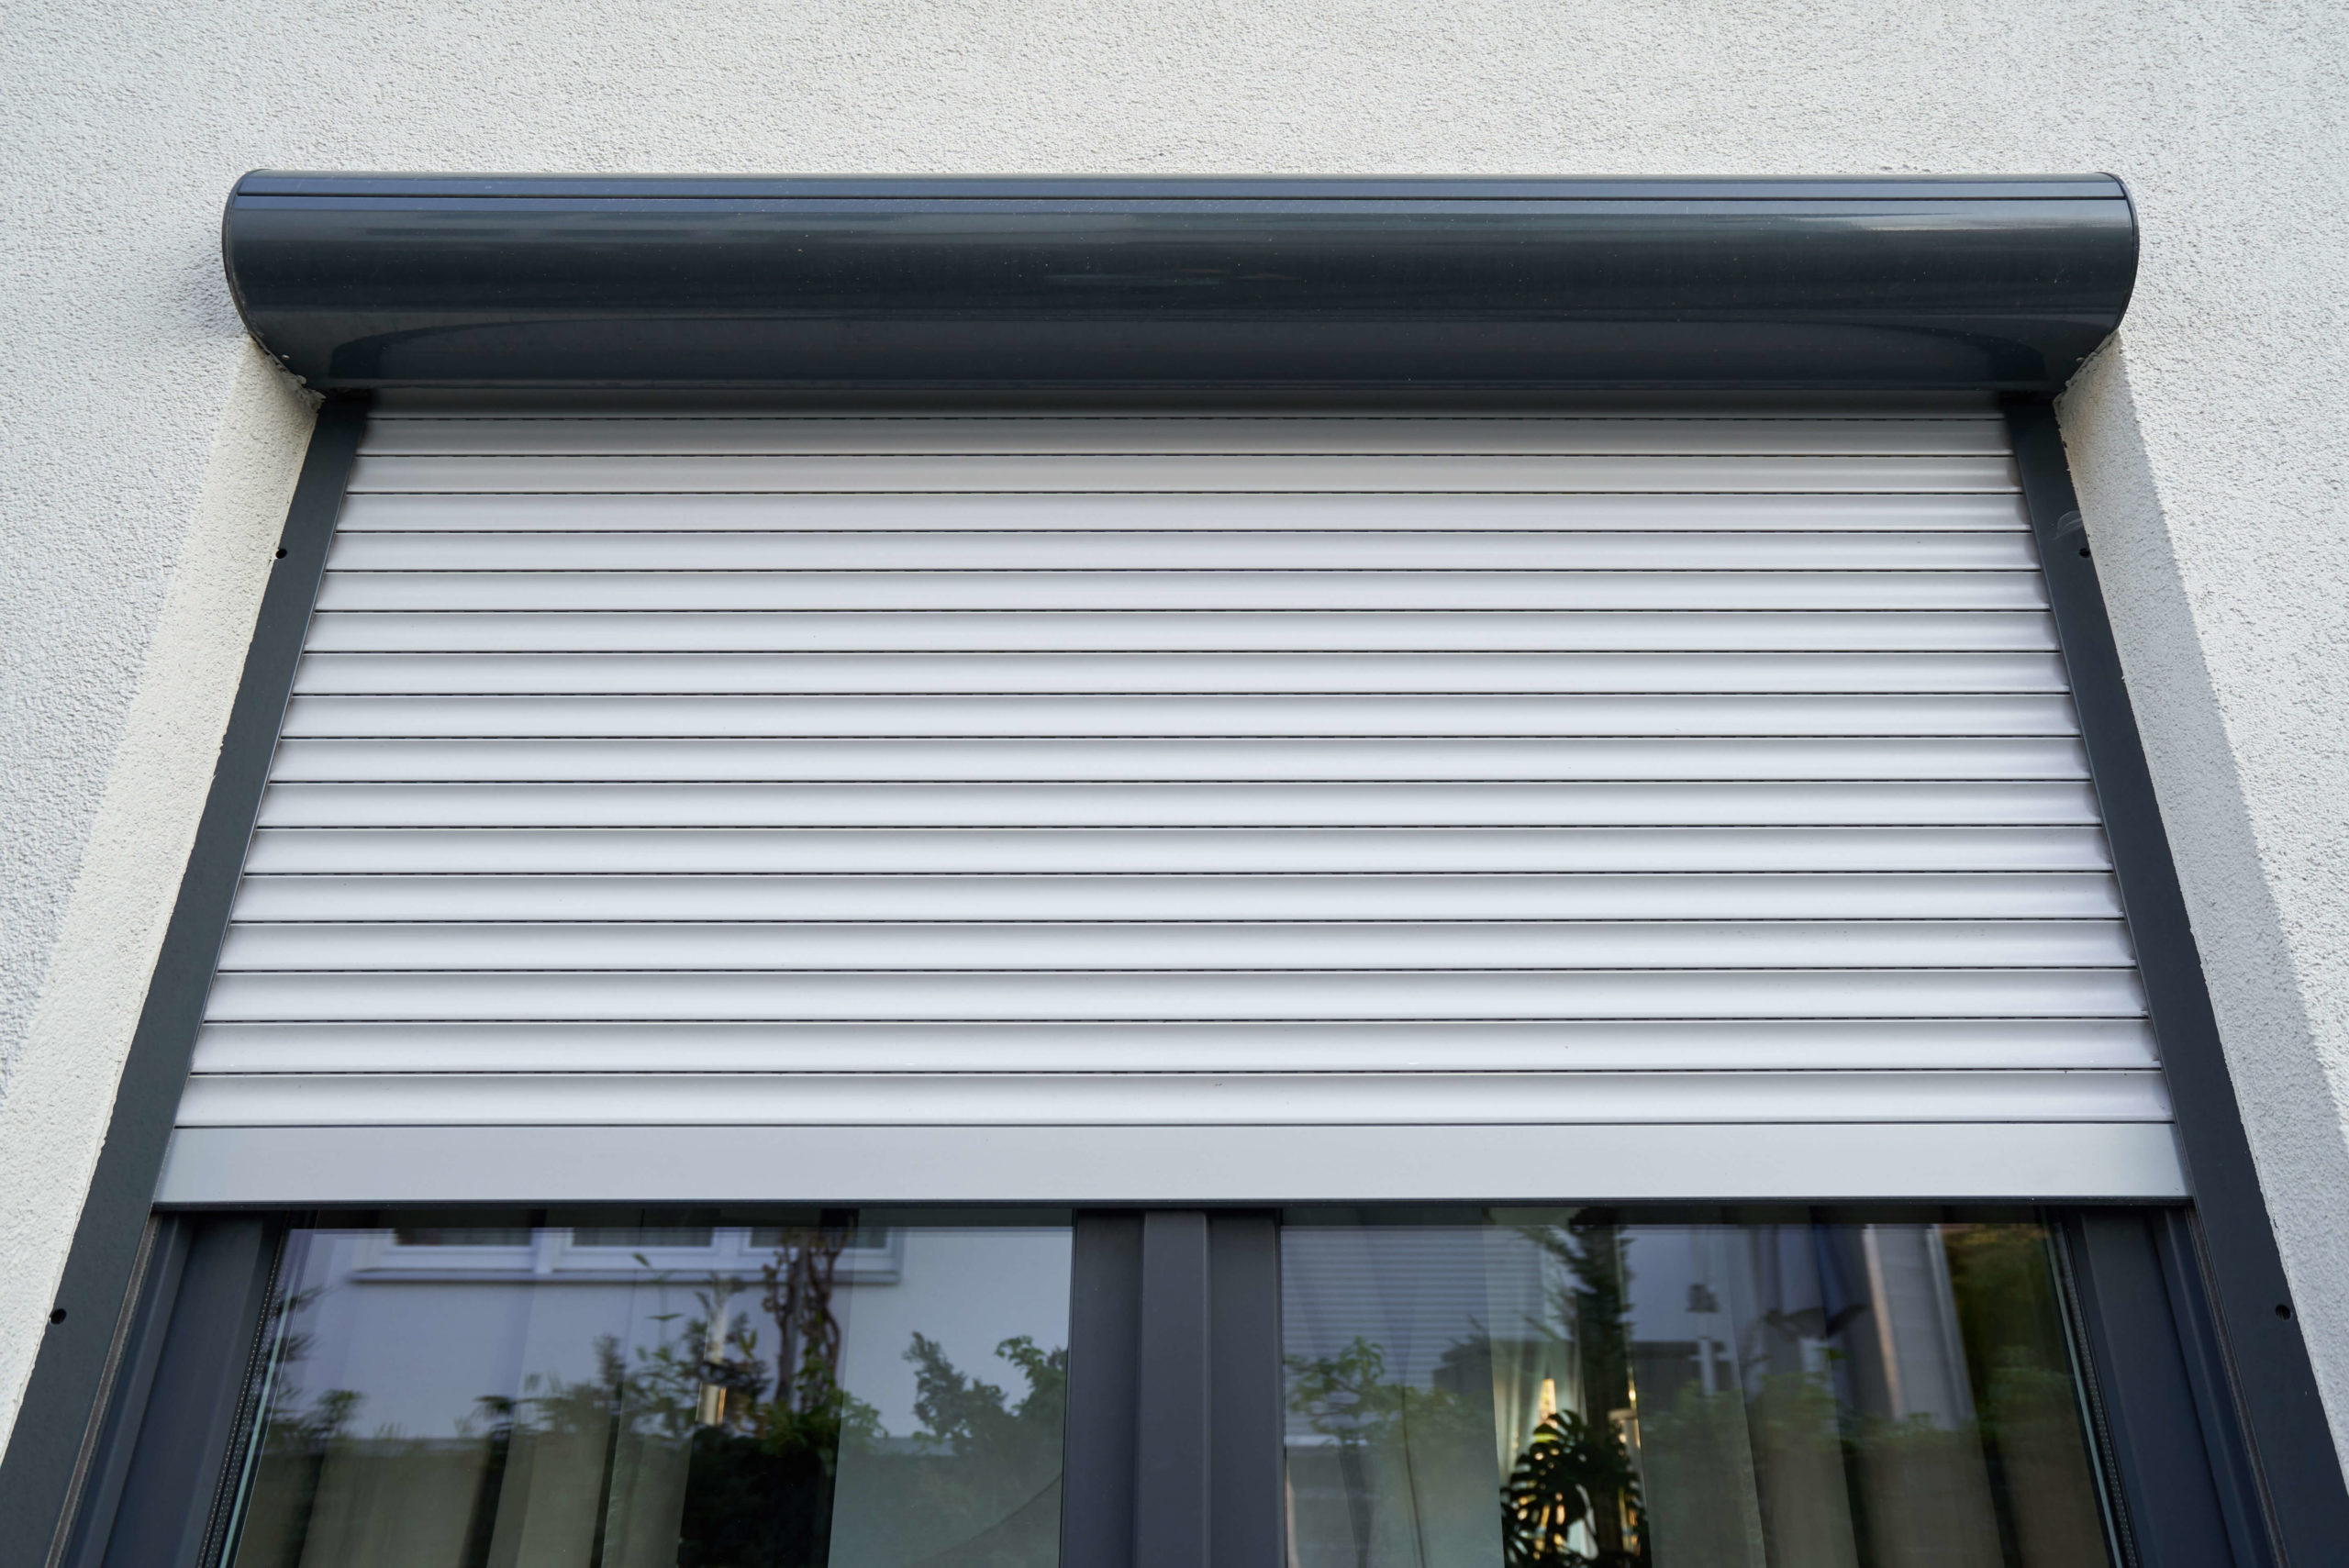 Security Assumed with Roller Shutters